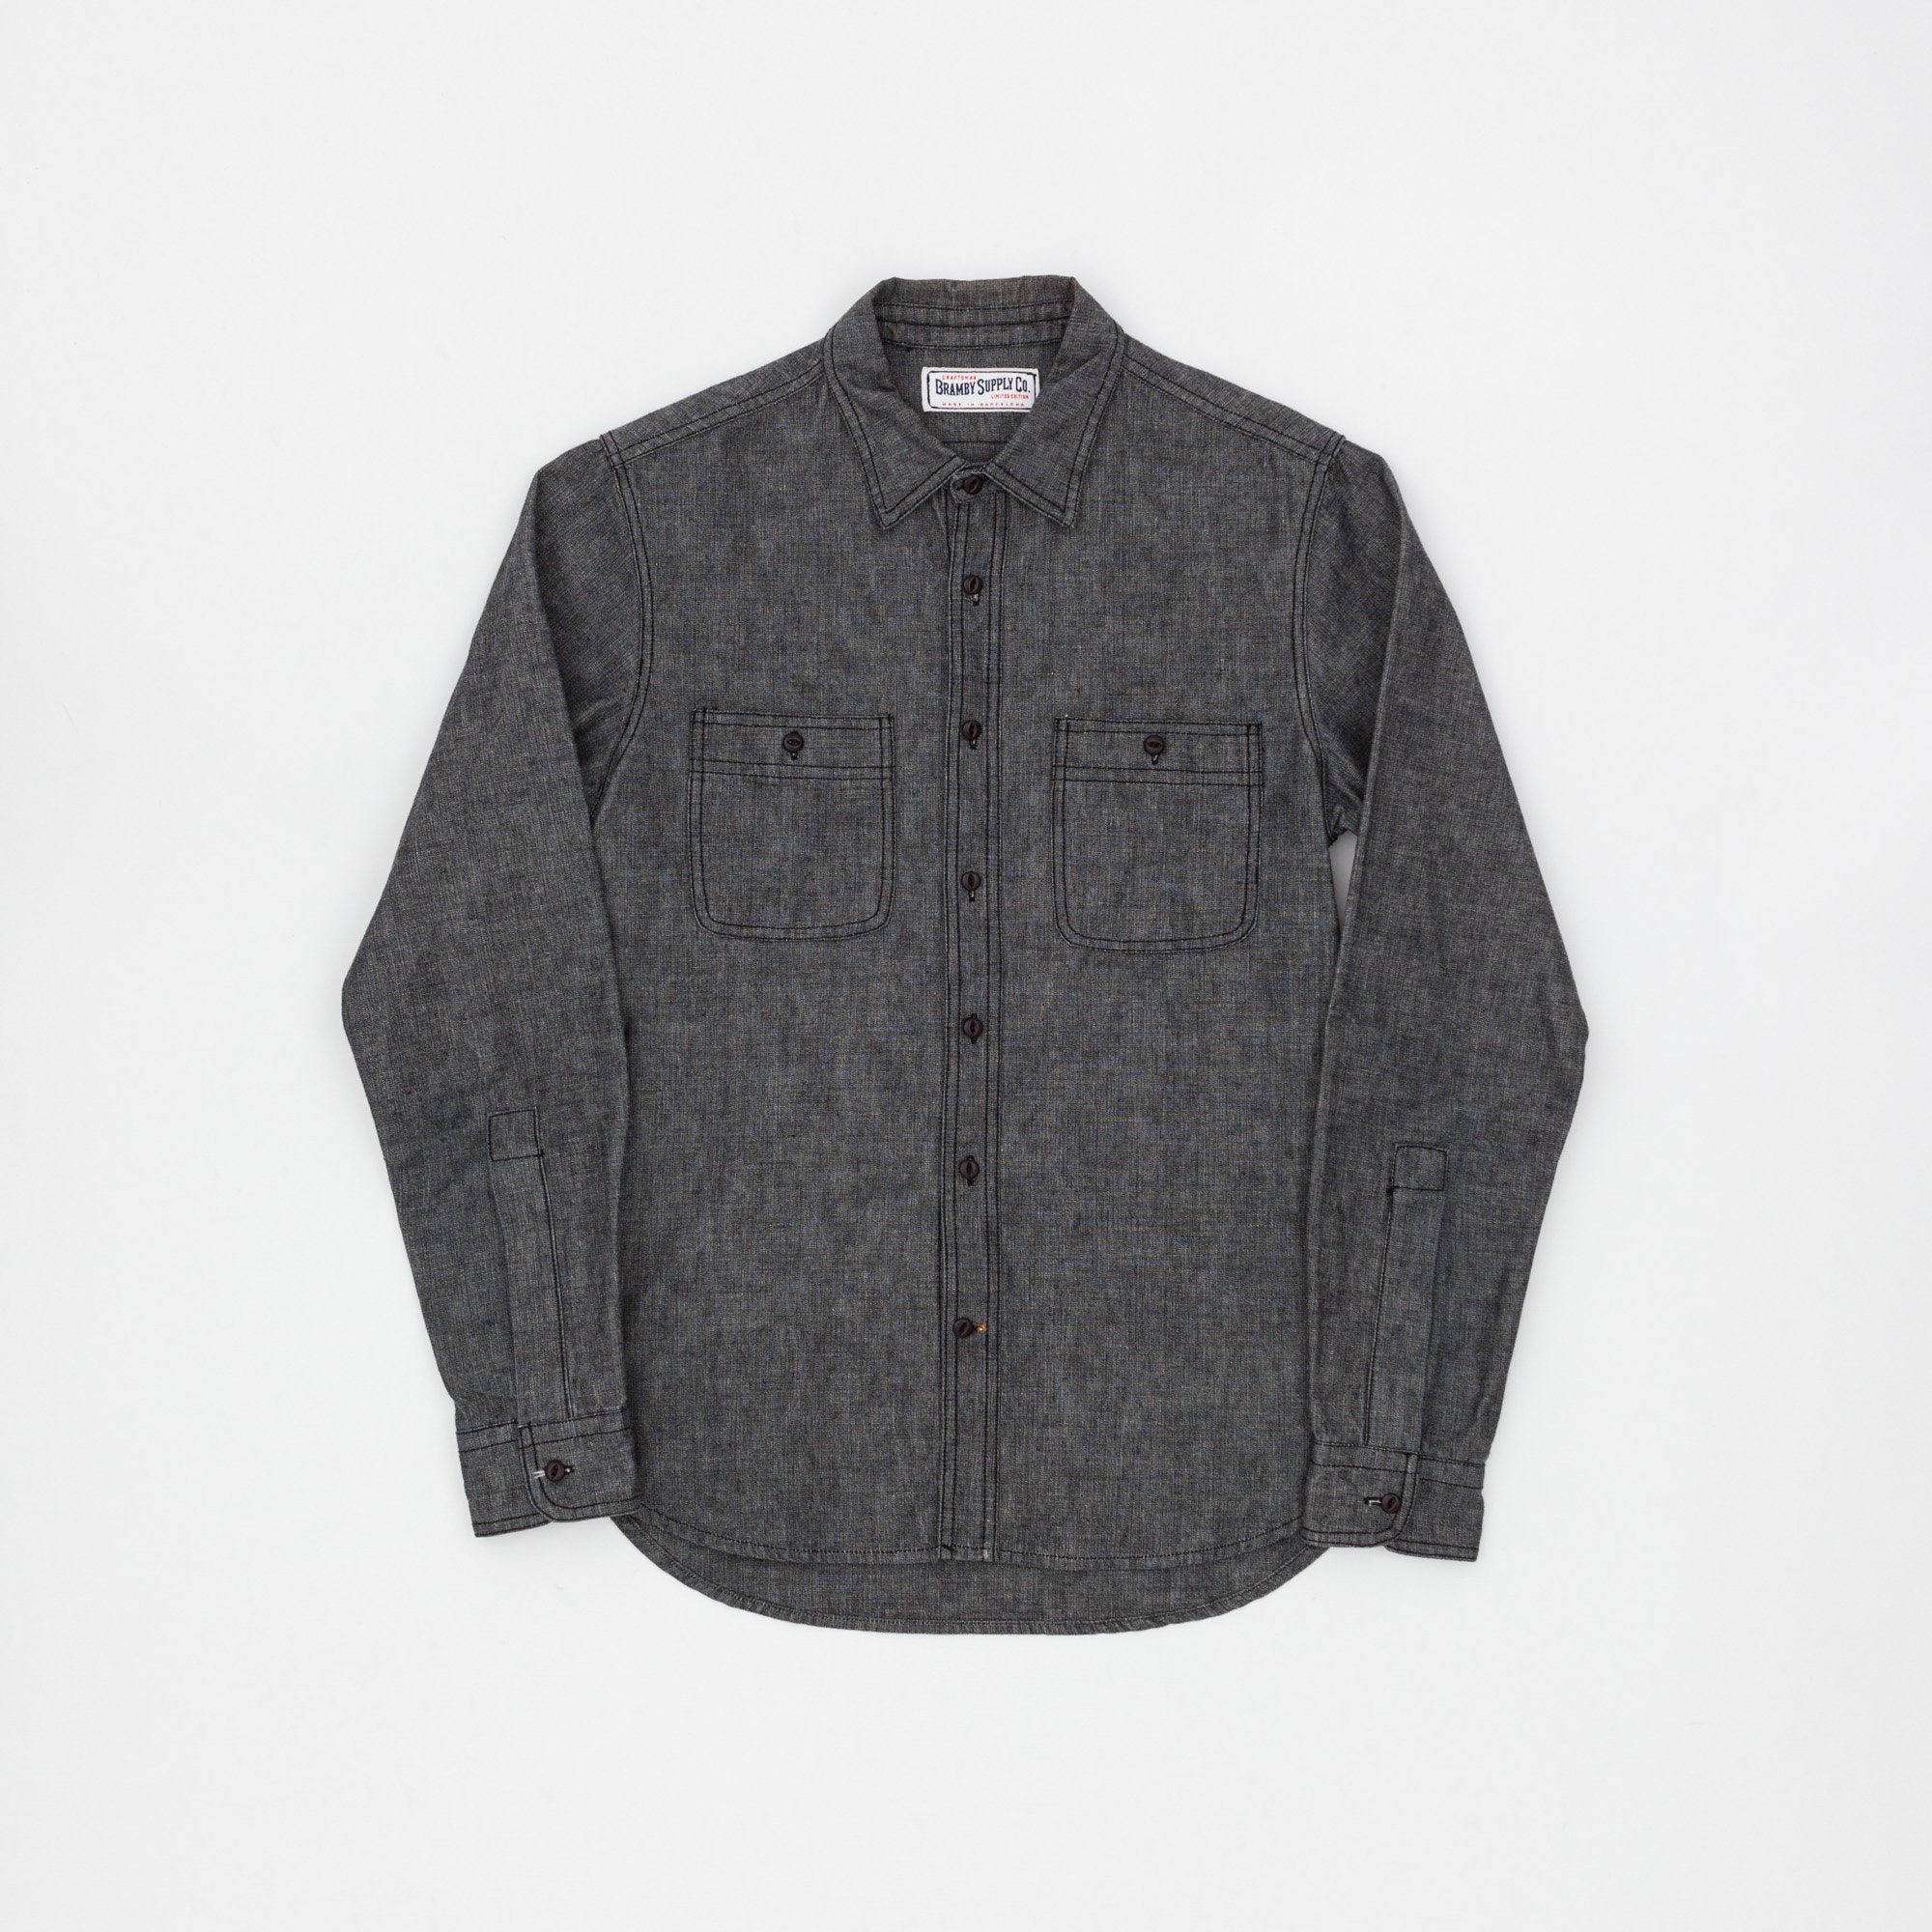 Bramby Supply Co. Chambray Shirt